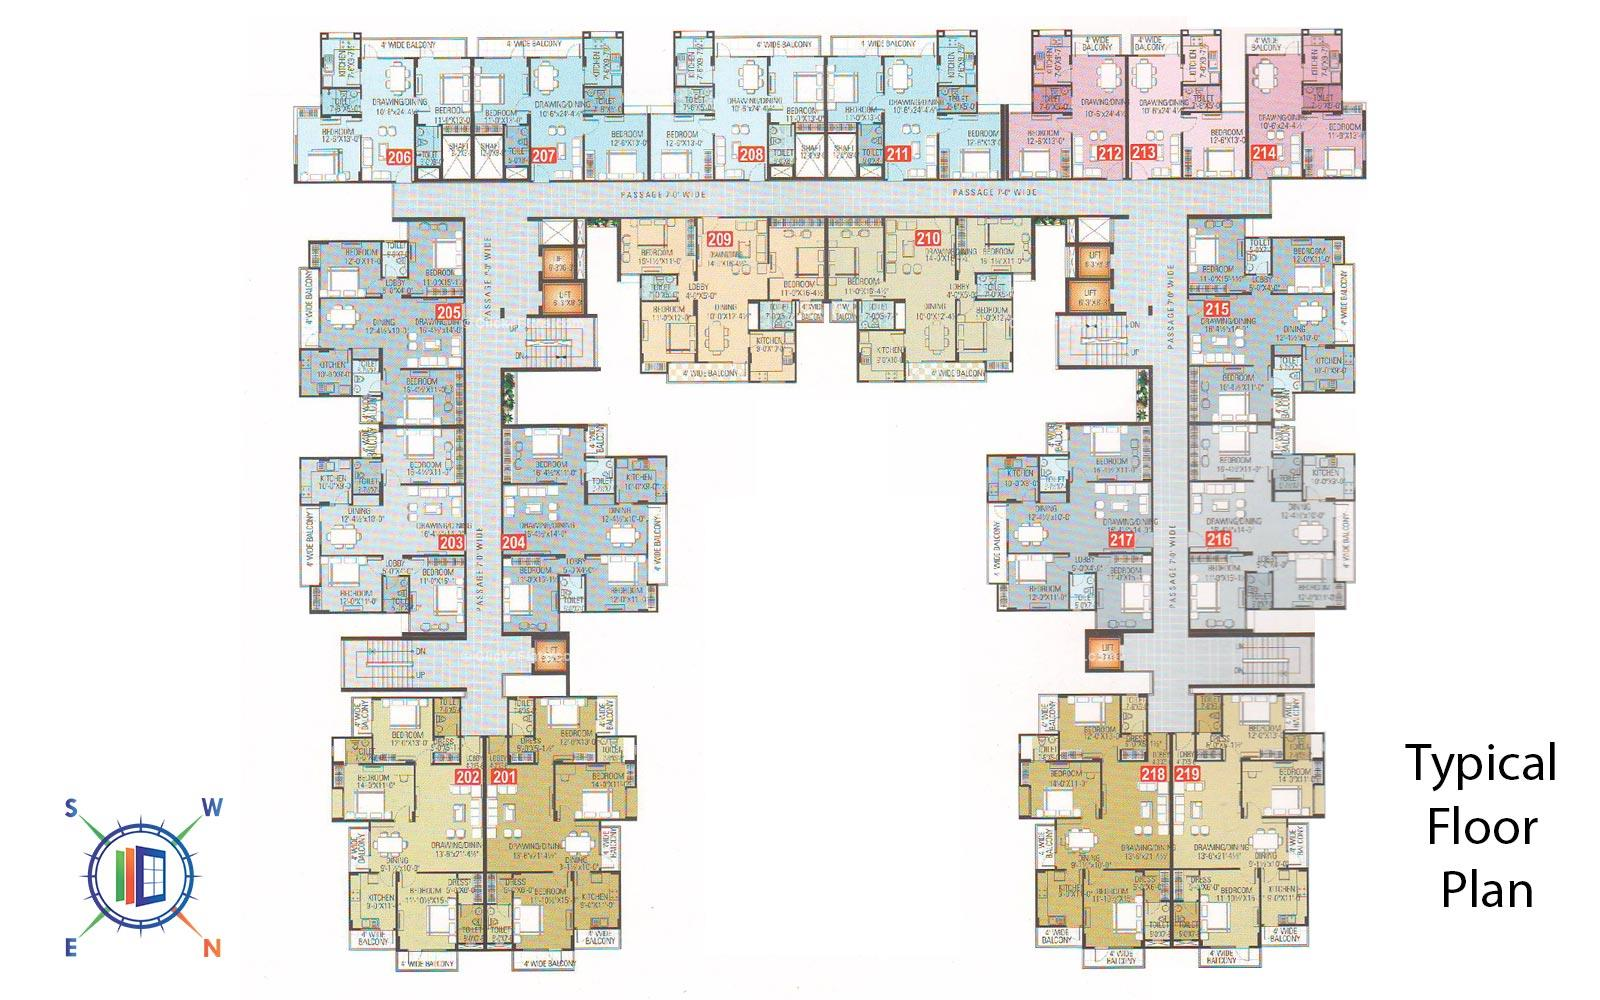 Euro Exotica Typical Floor Plan